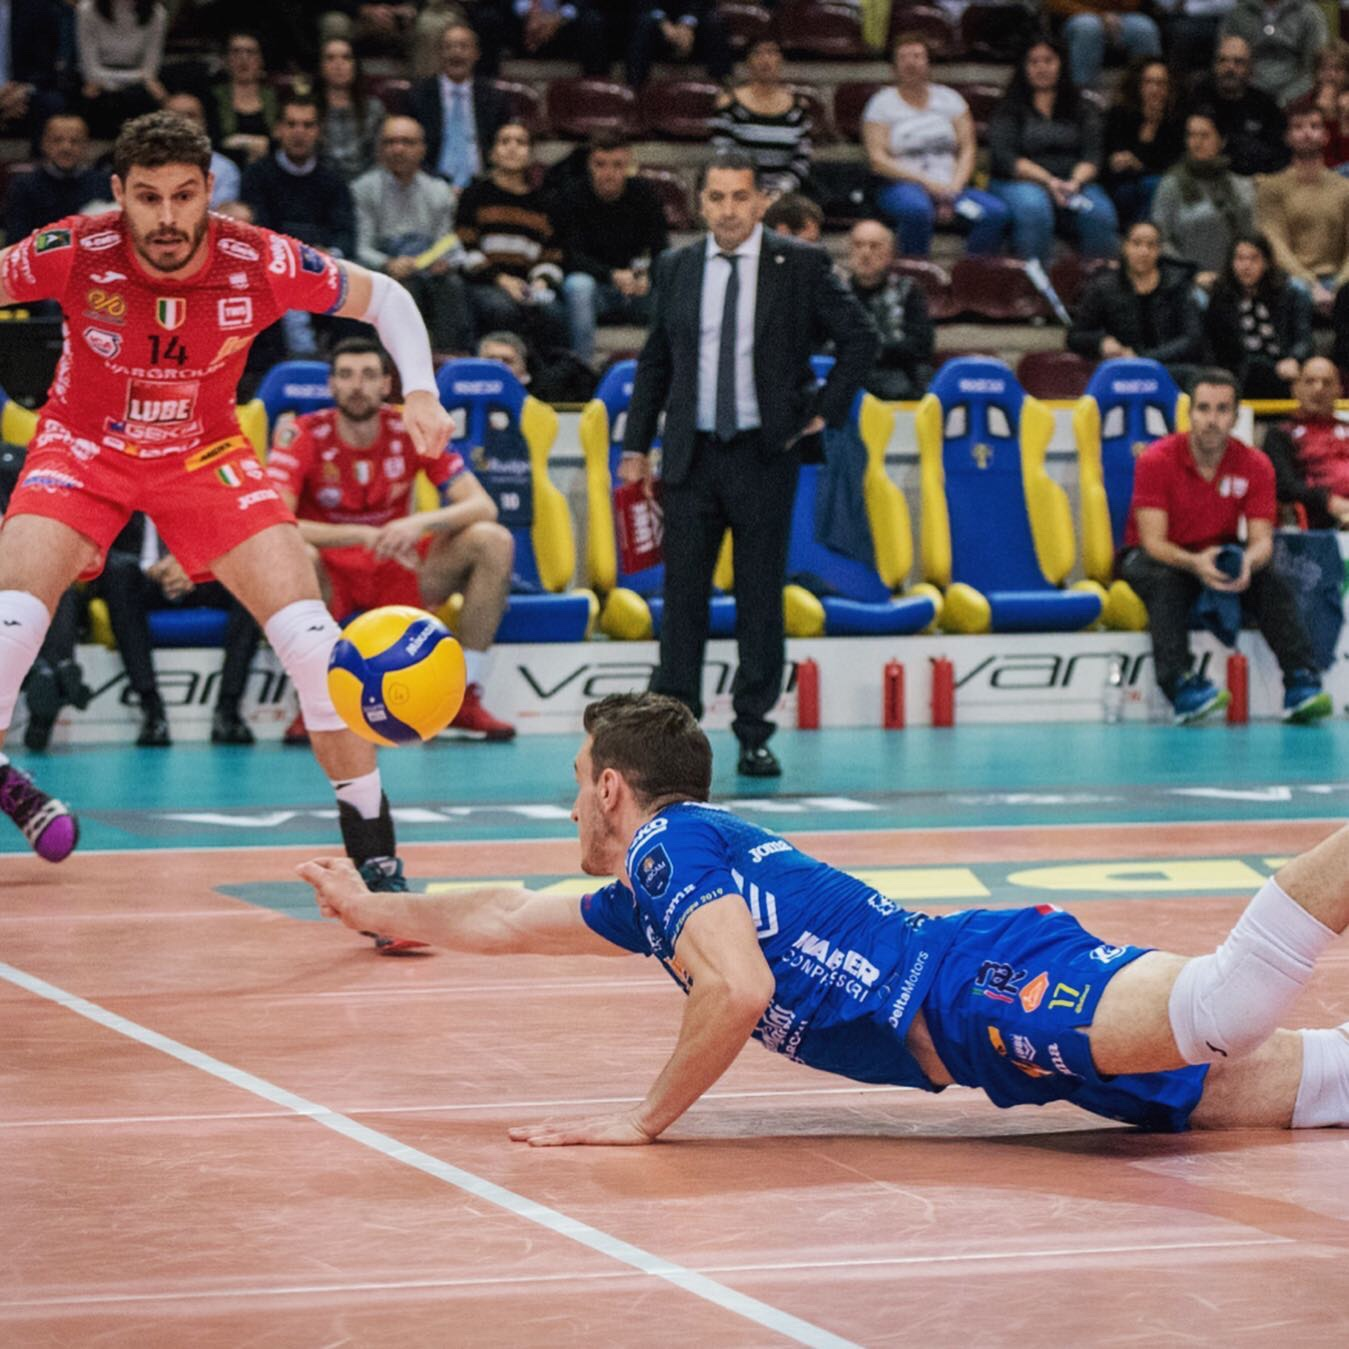 Italy: Lube prevail without difficulties over Verona, Modena record 5th straight-set victory in a row